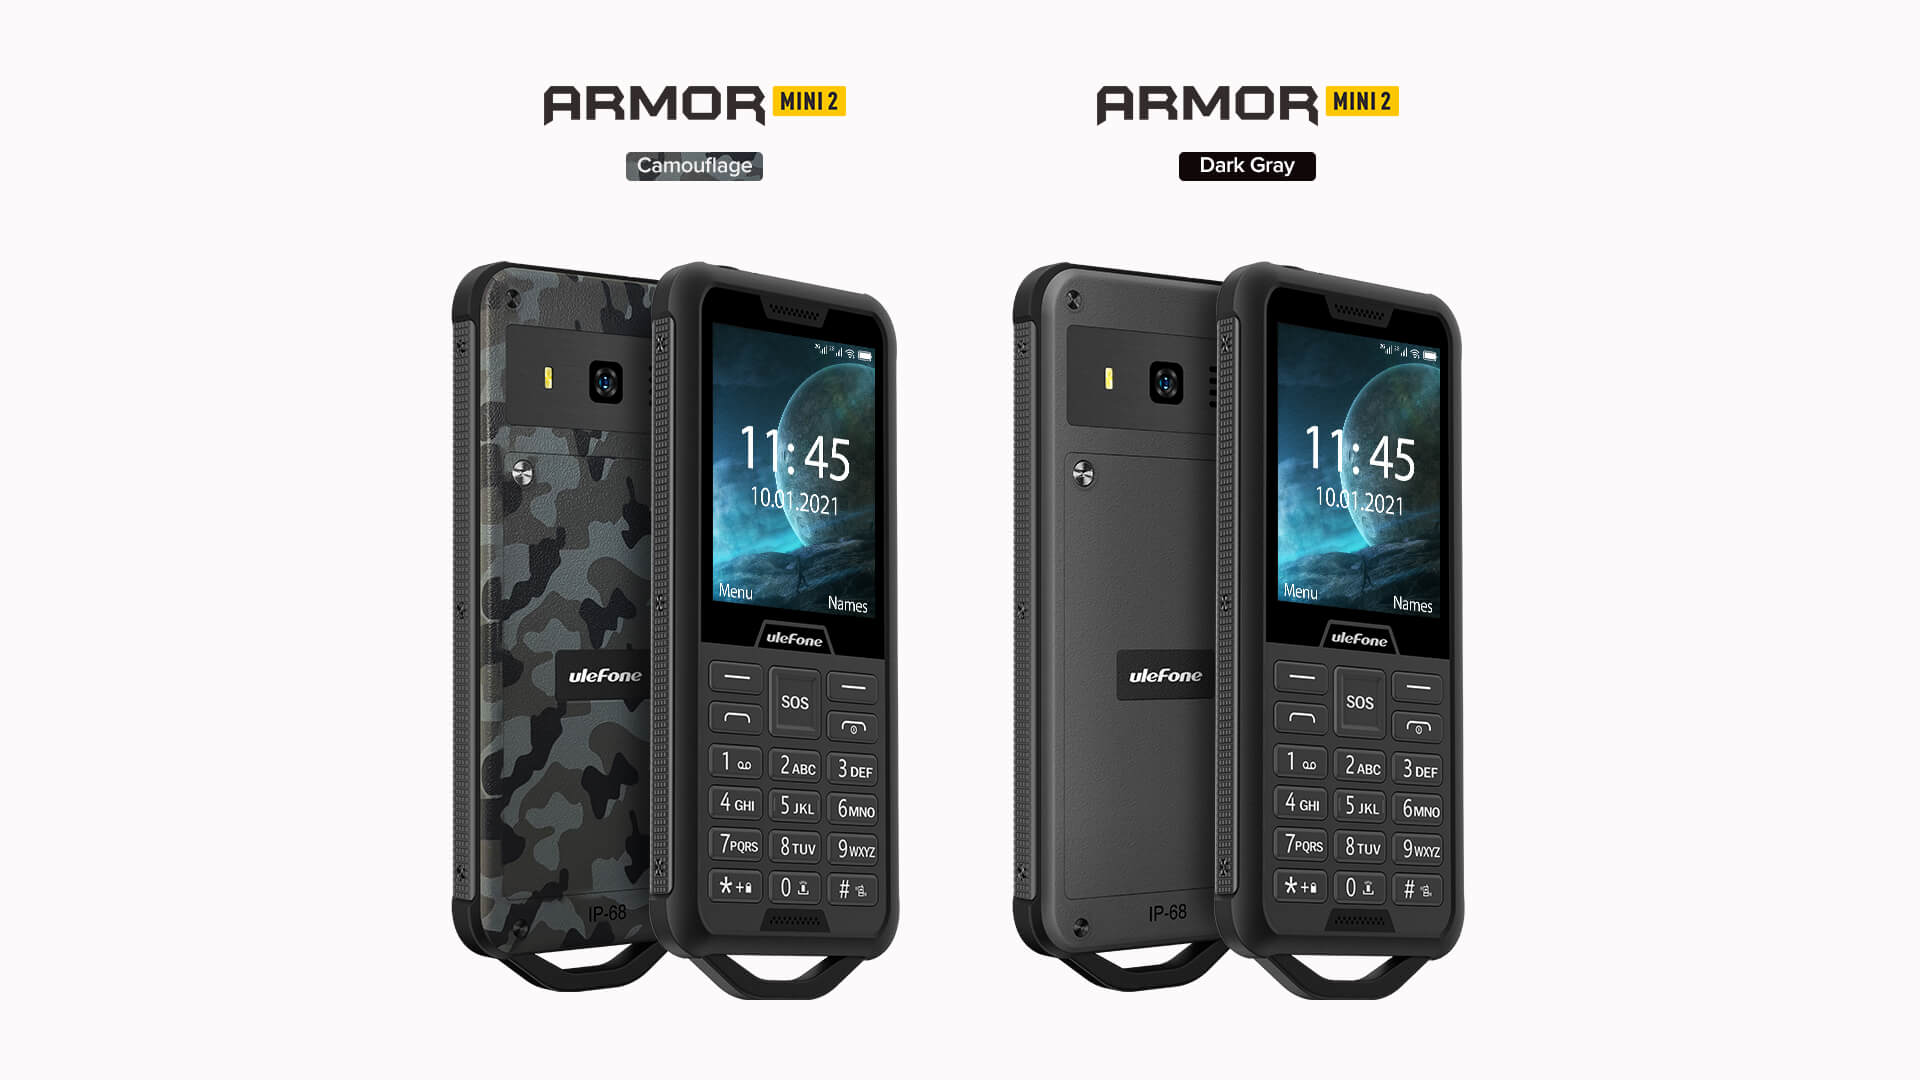 Rugged SA UleFone Armor Mini 2 Rugged Phone